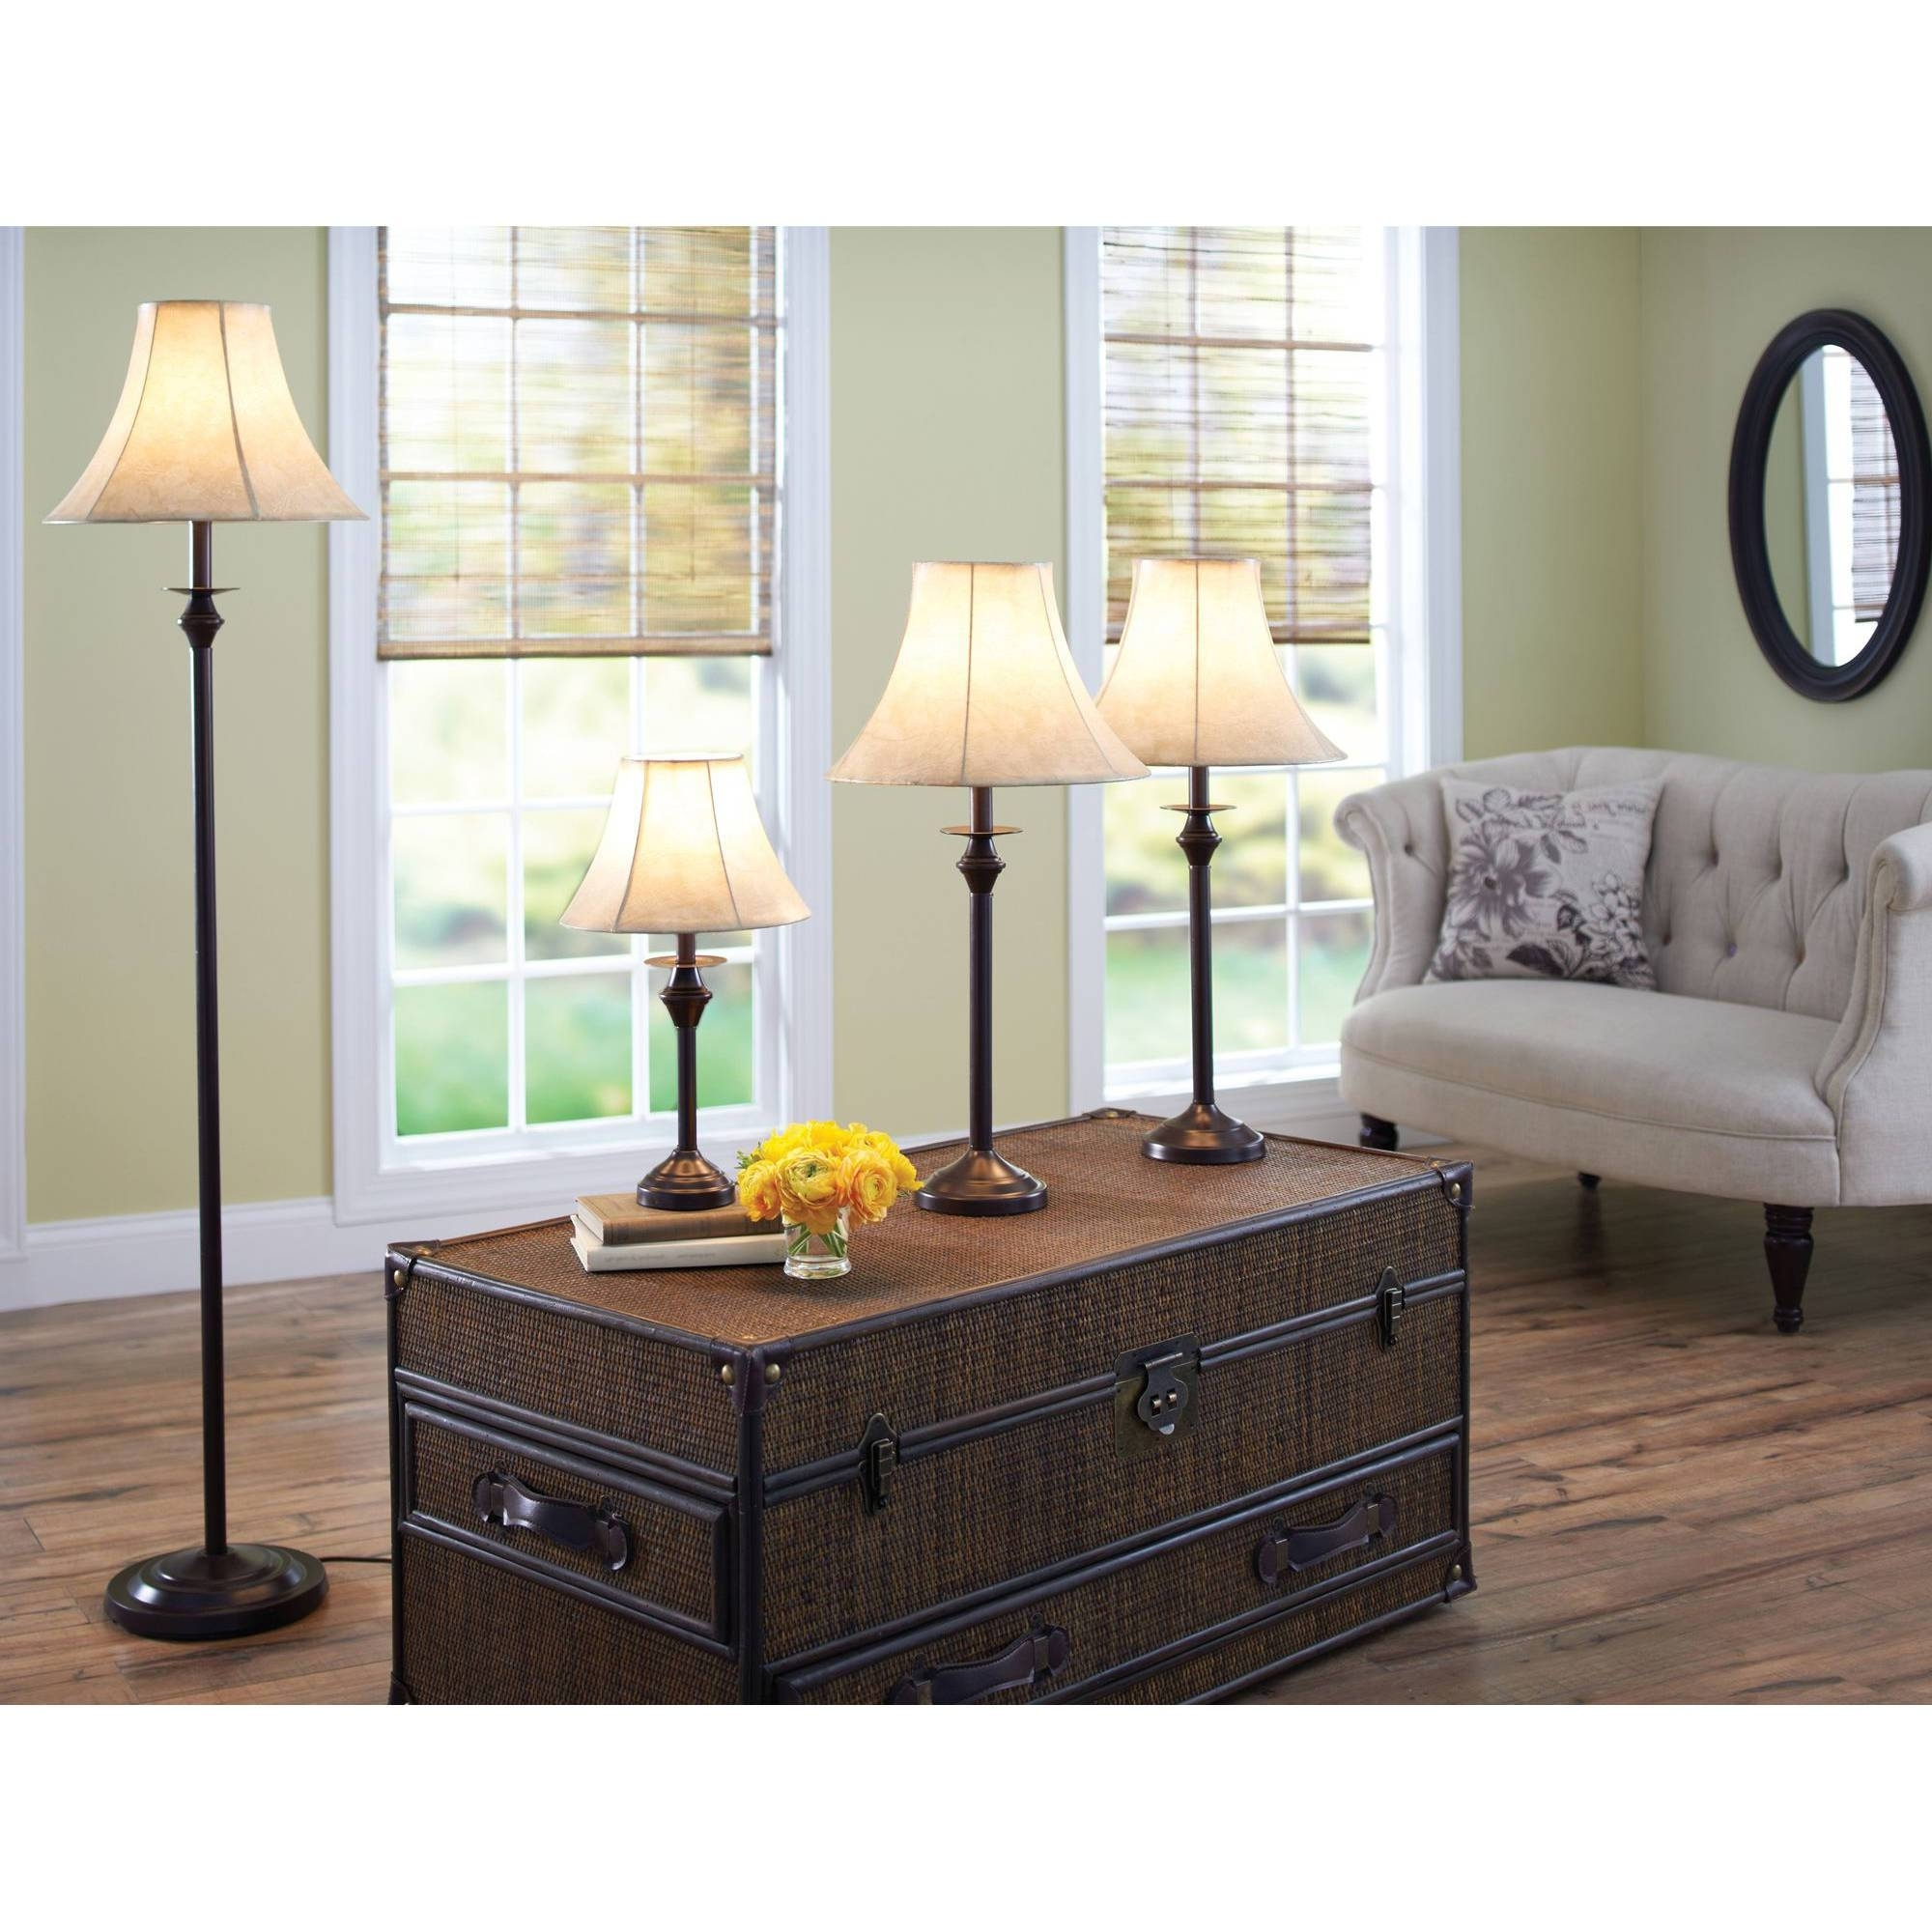 Bronze Living Room Table Lamps With 2018 Bronze Table Lamps For Living Room Home Design Plan, Bronze Table (View 9 of 15)